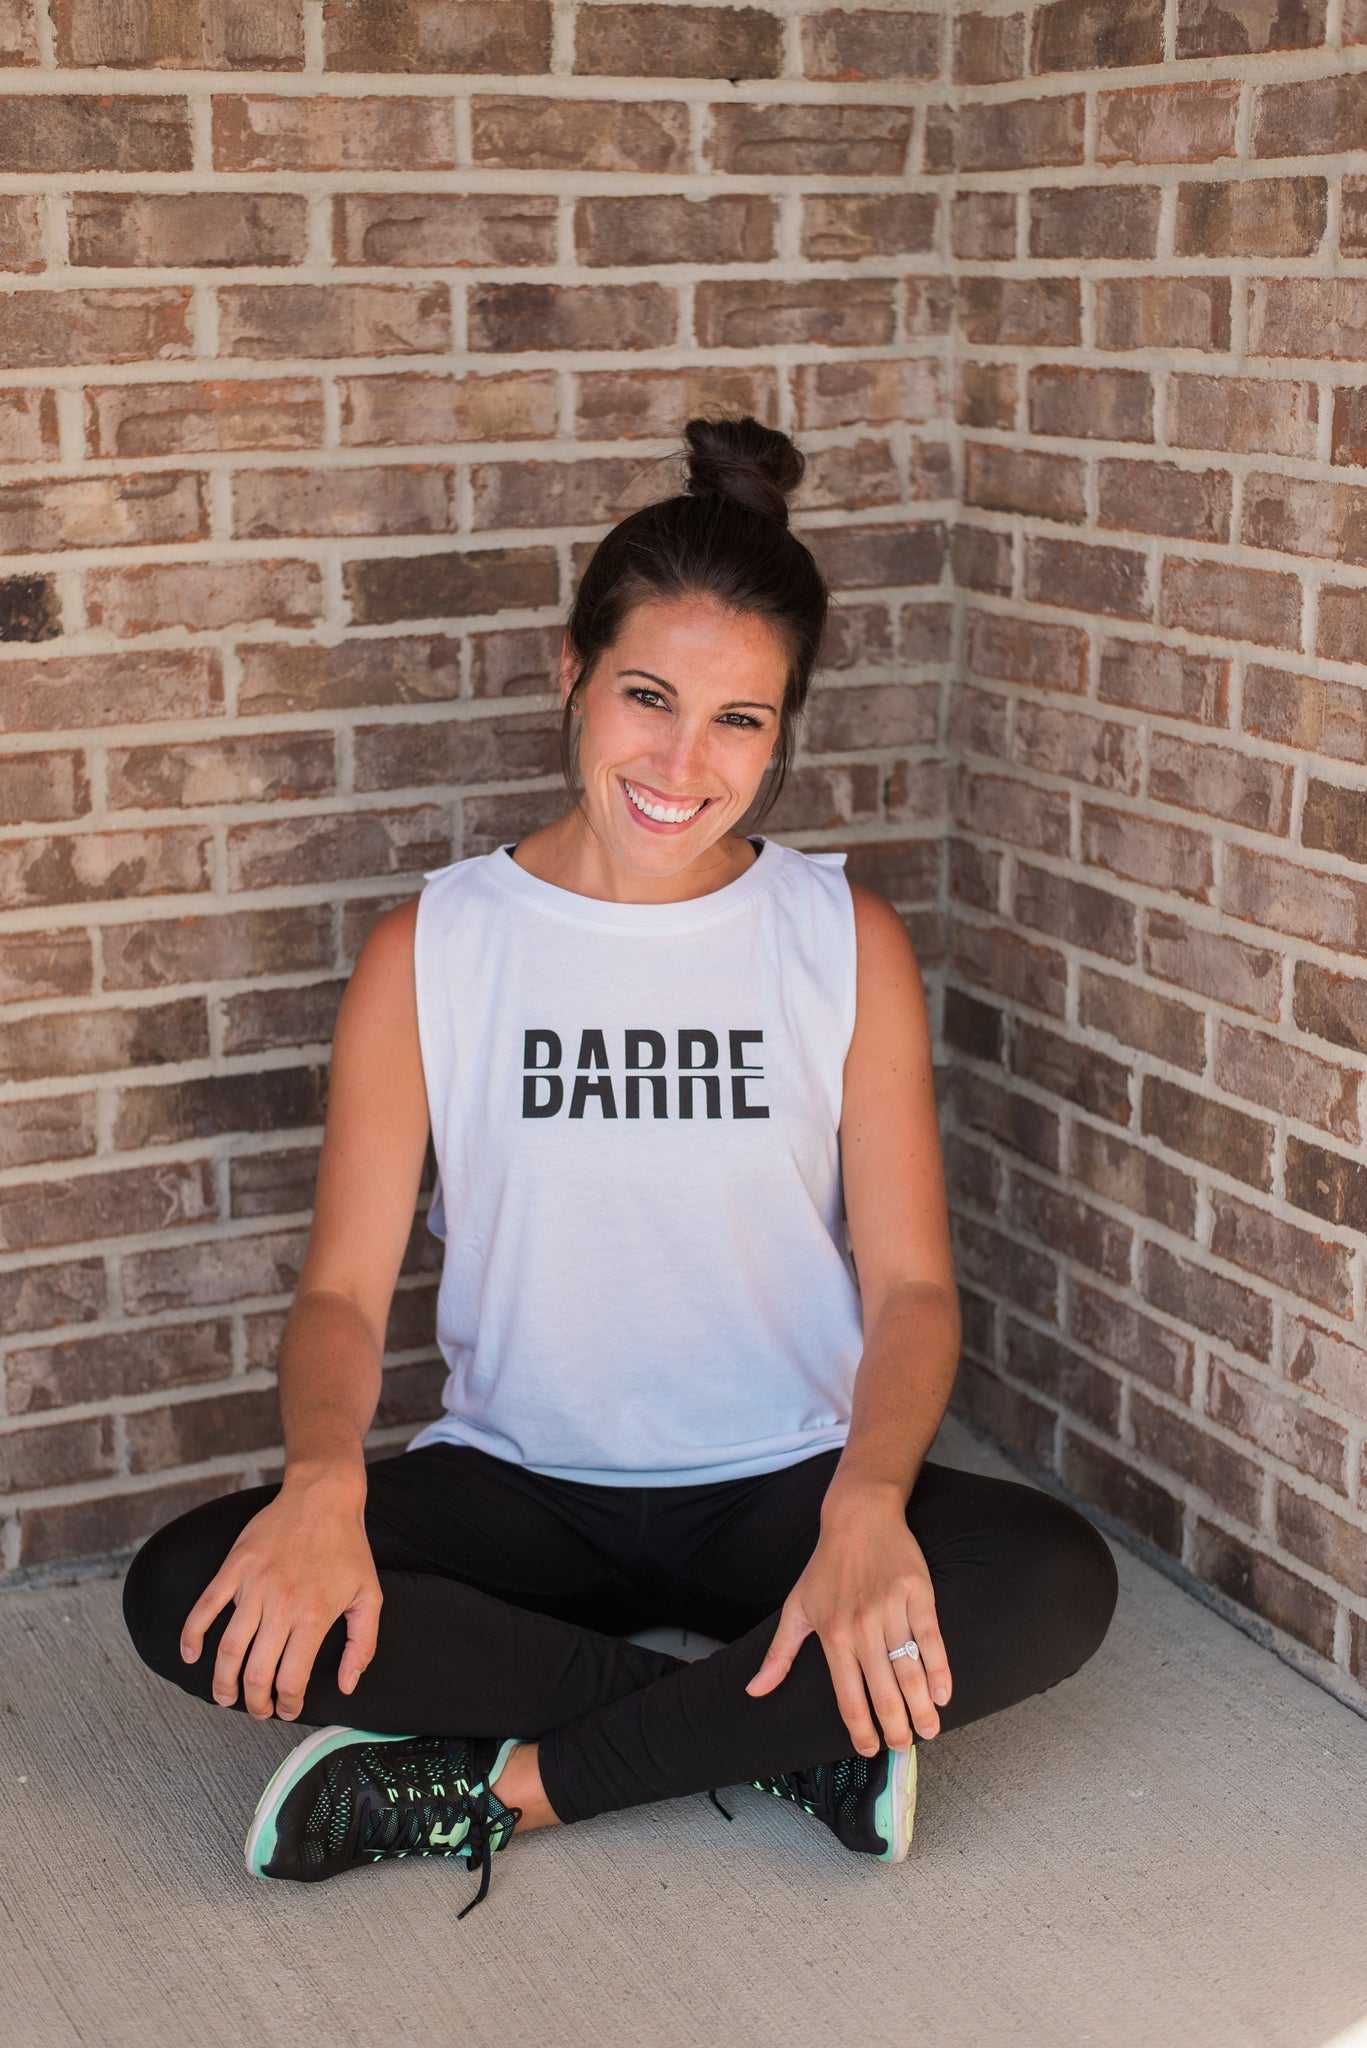 White, lightweight, dropped arm holes, athleisure wear - Barre Tee